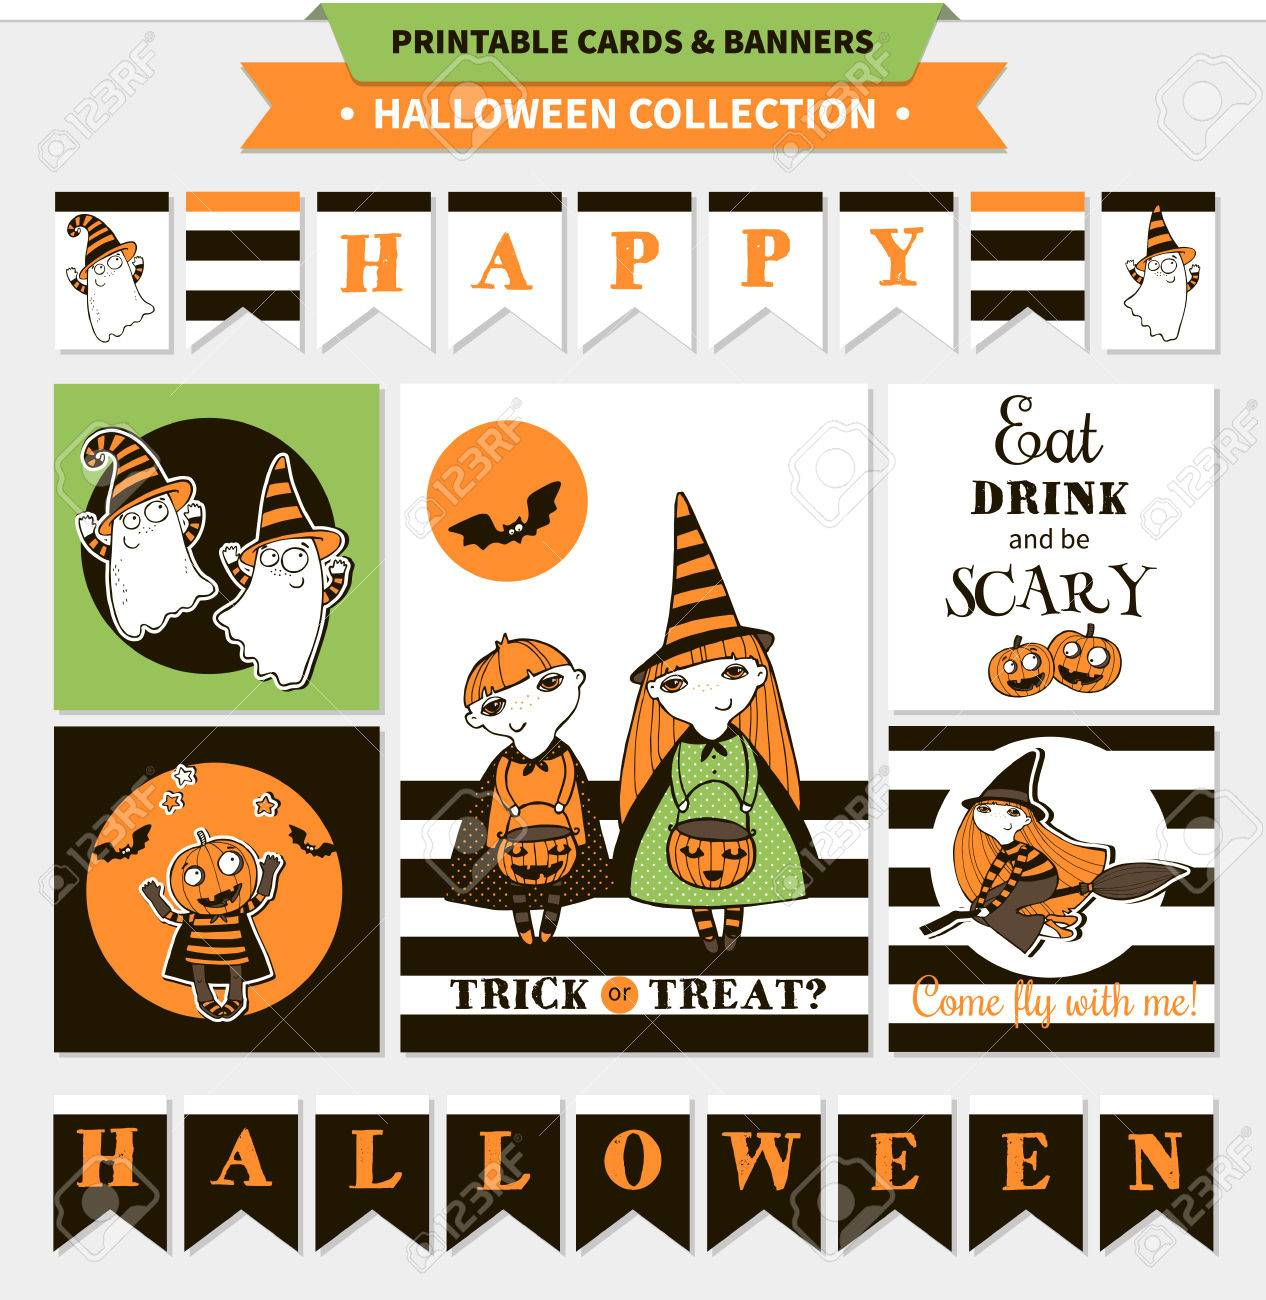 picture about Printable Halloween Banners called Halloween printable vector playing cards and banners with cartoon amusing..